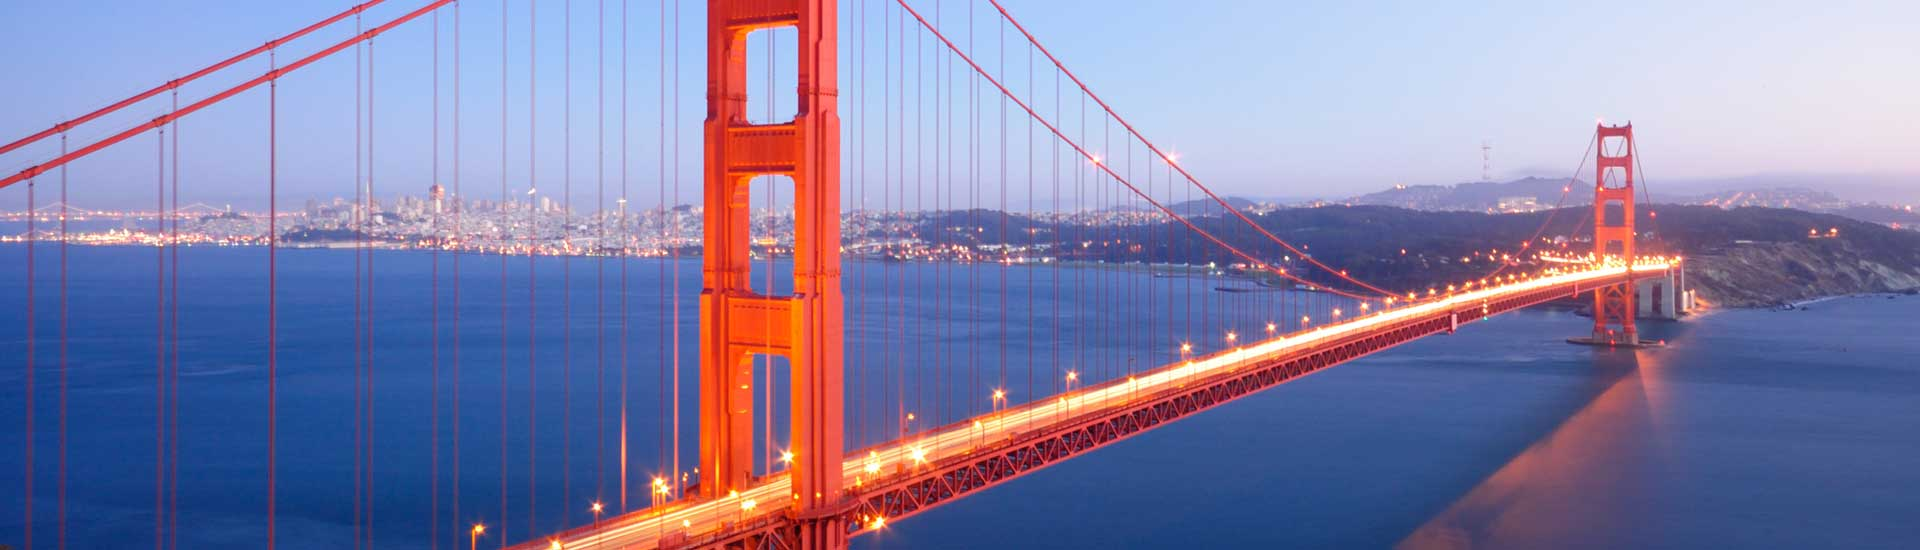 7 secrets about San Francisco